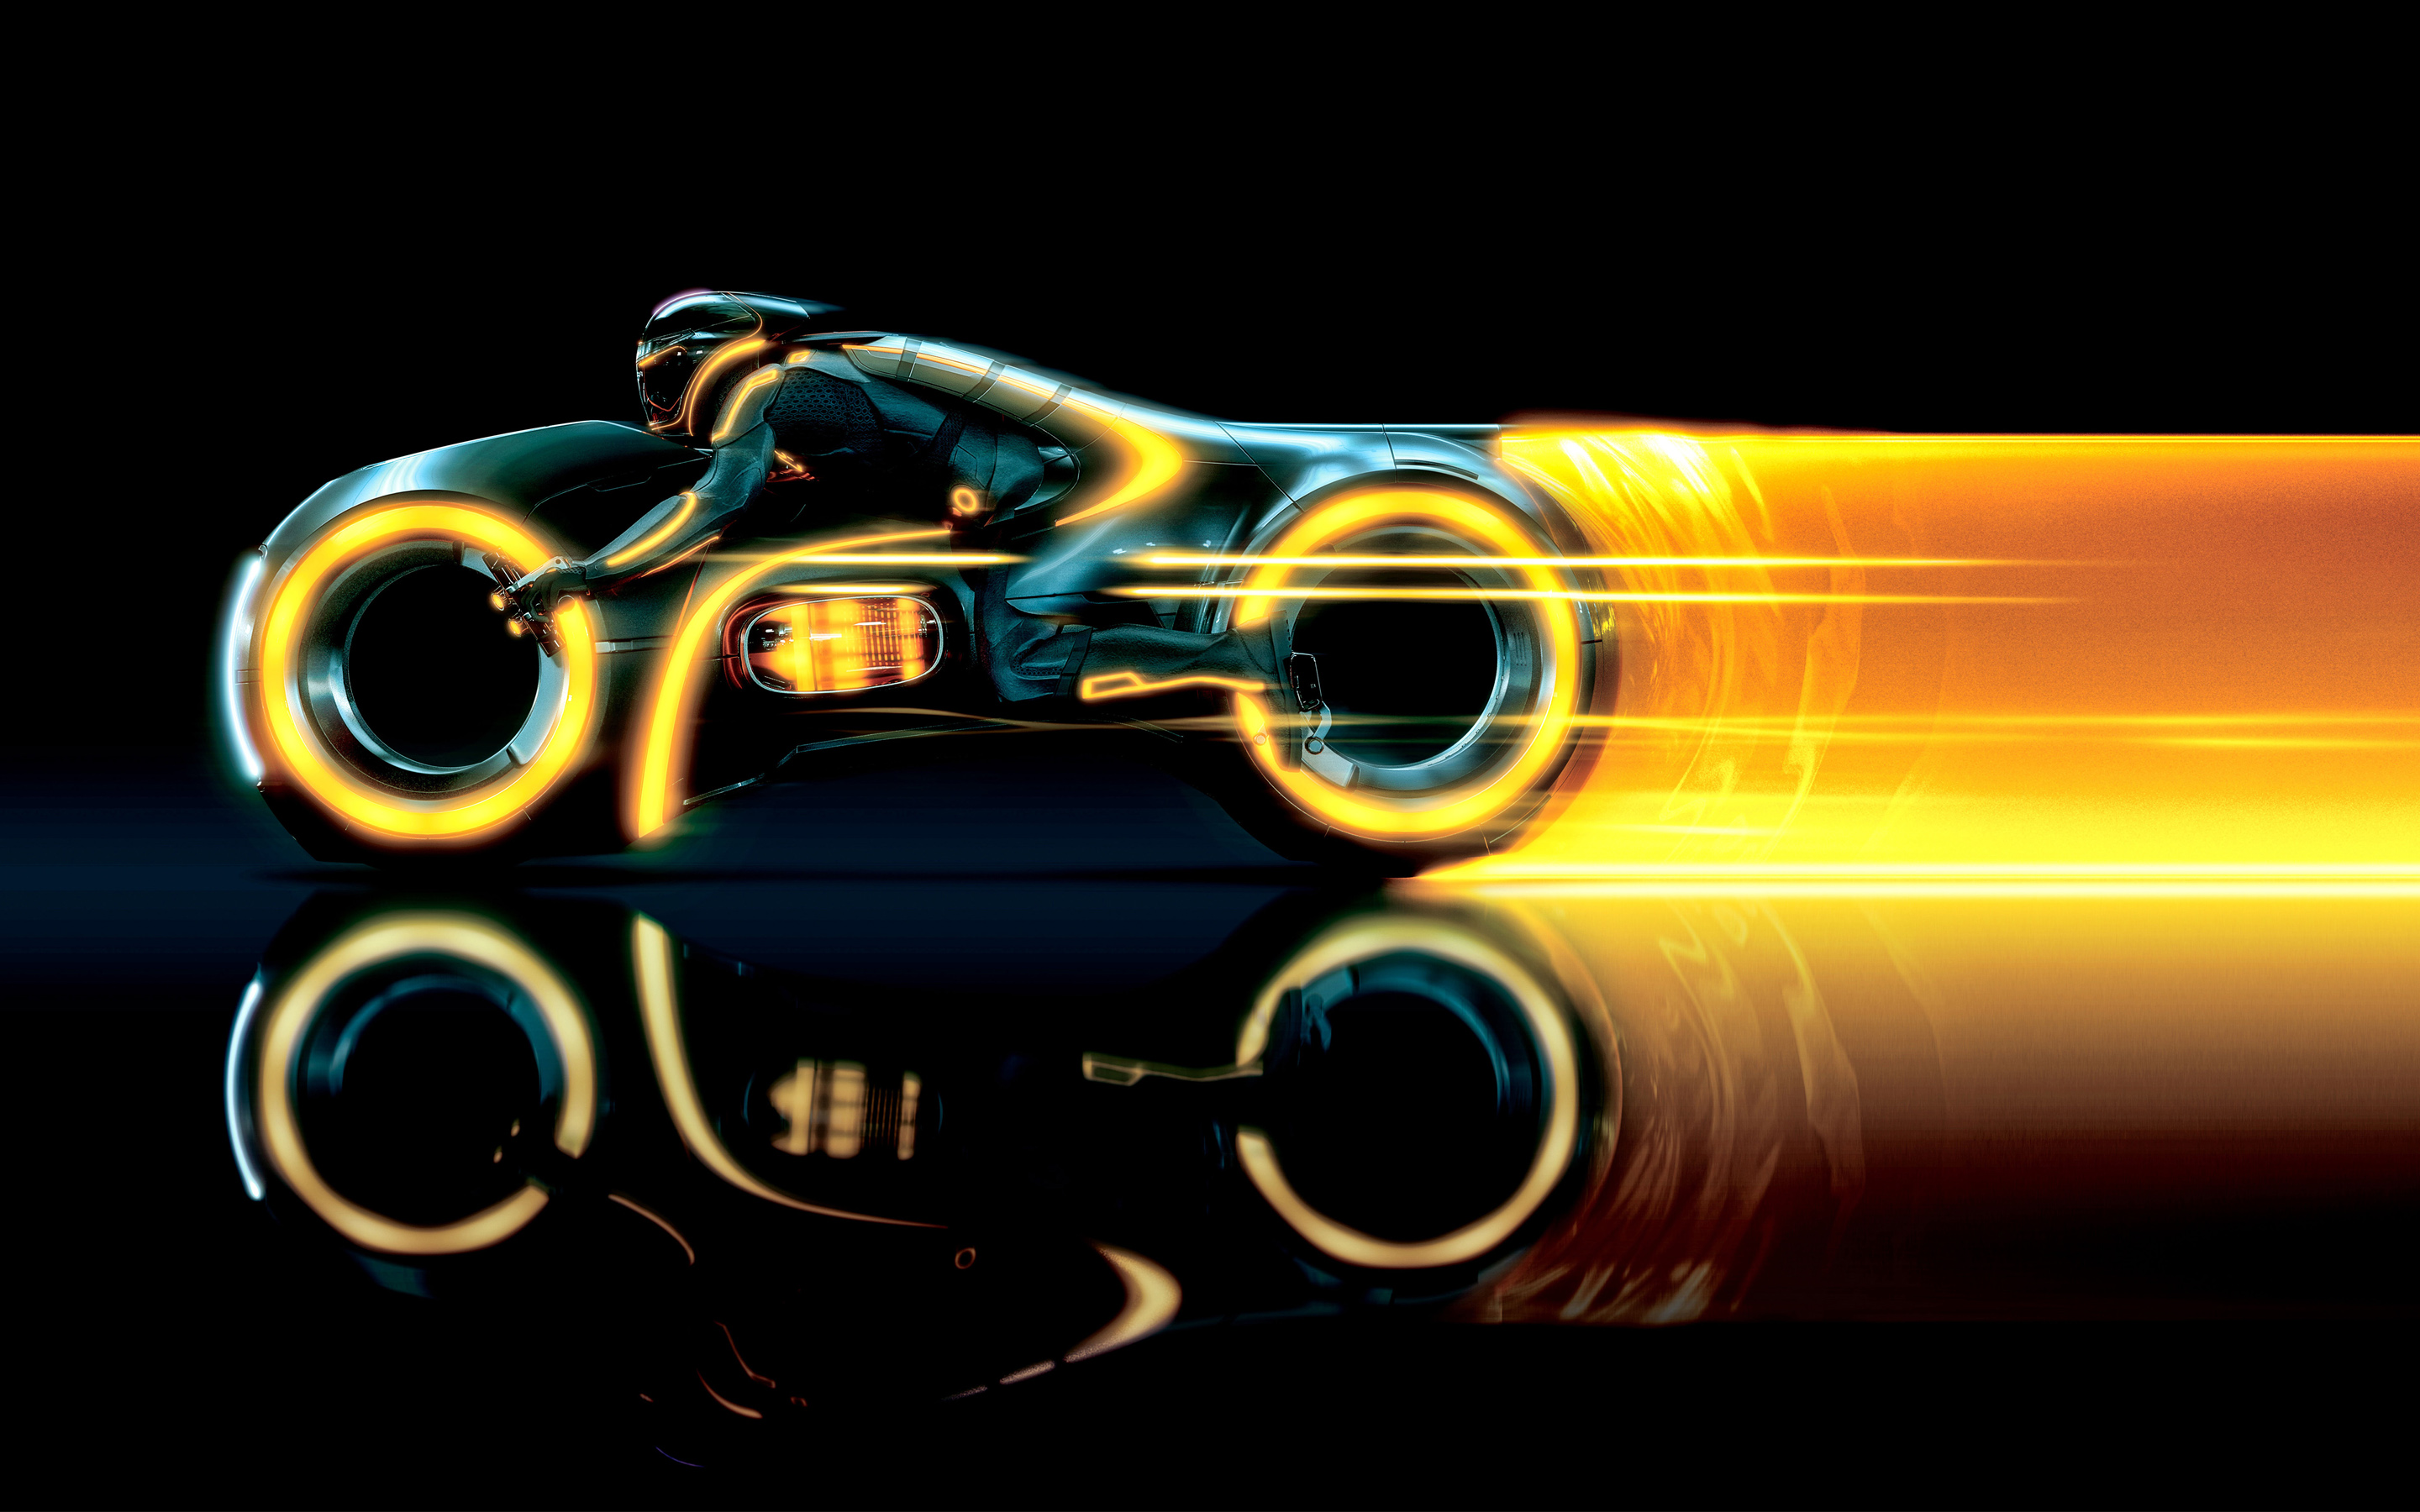 tron legacy lightcycle wallpapers | wallpapers hd